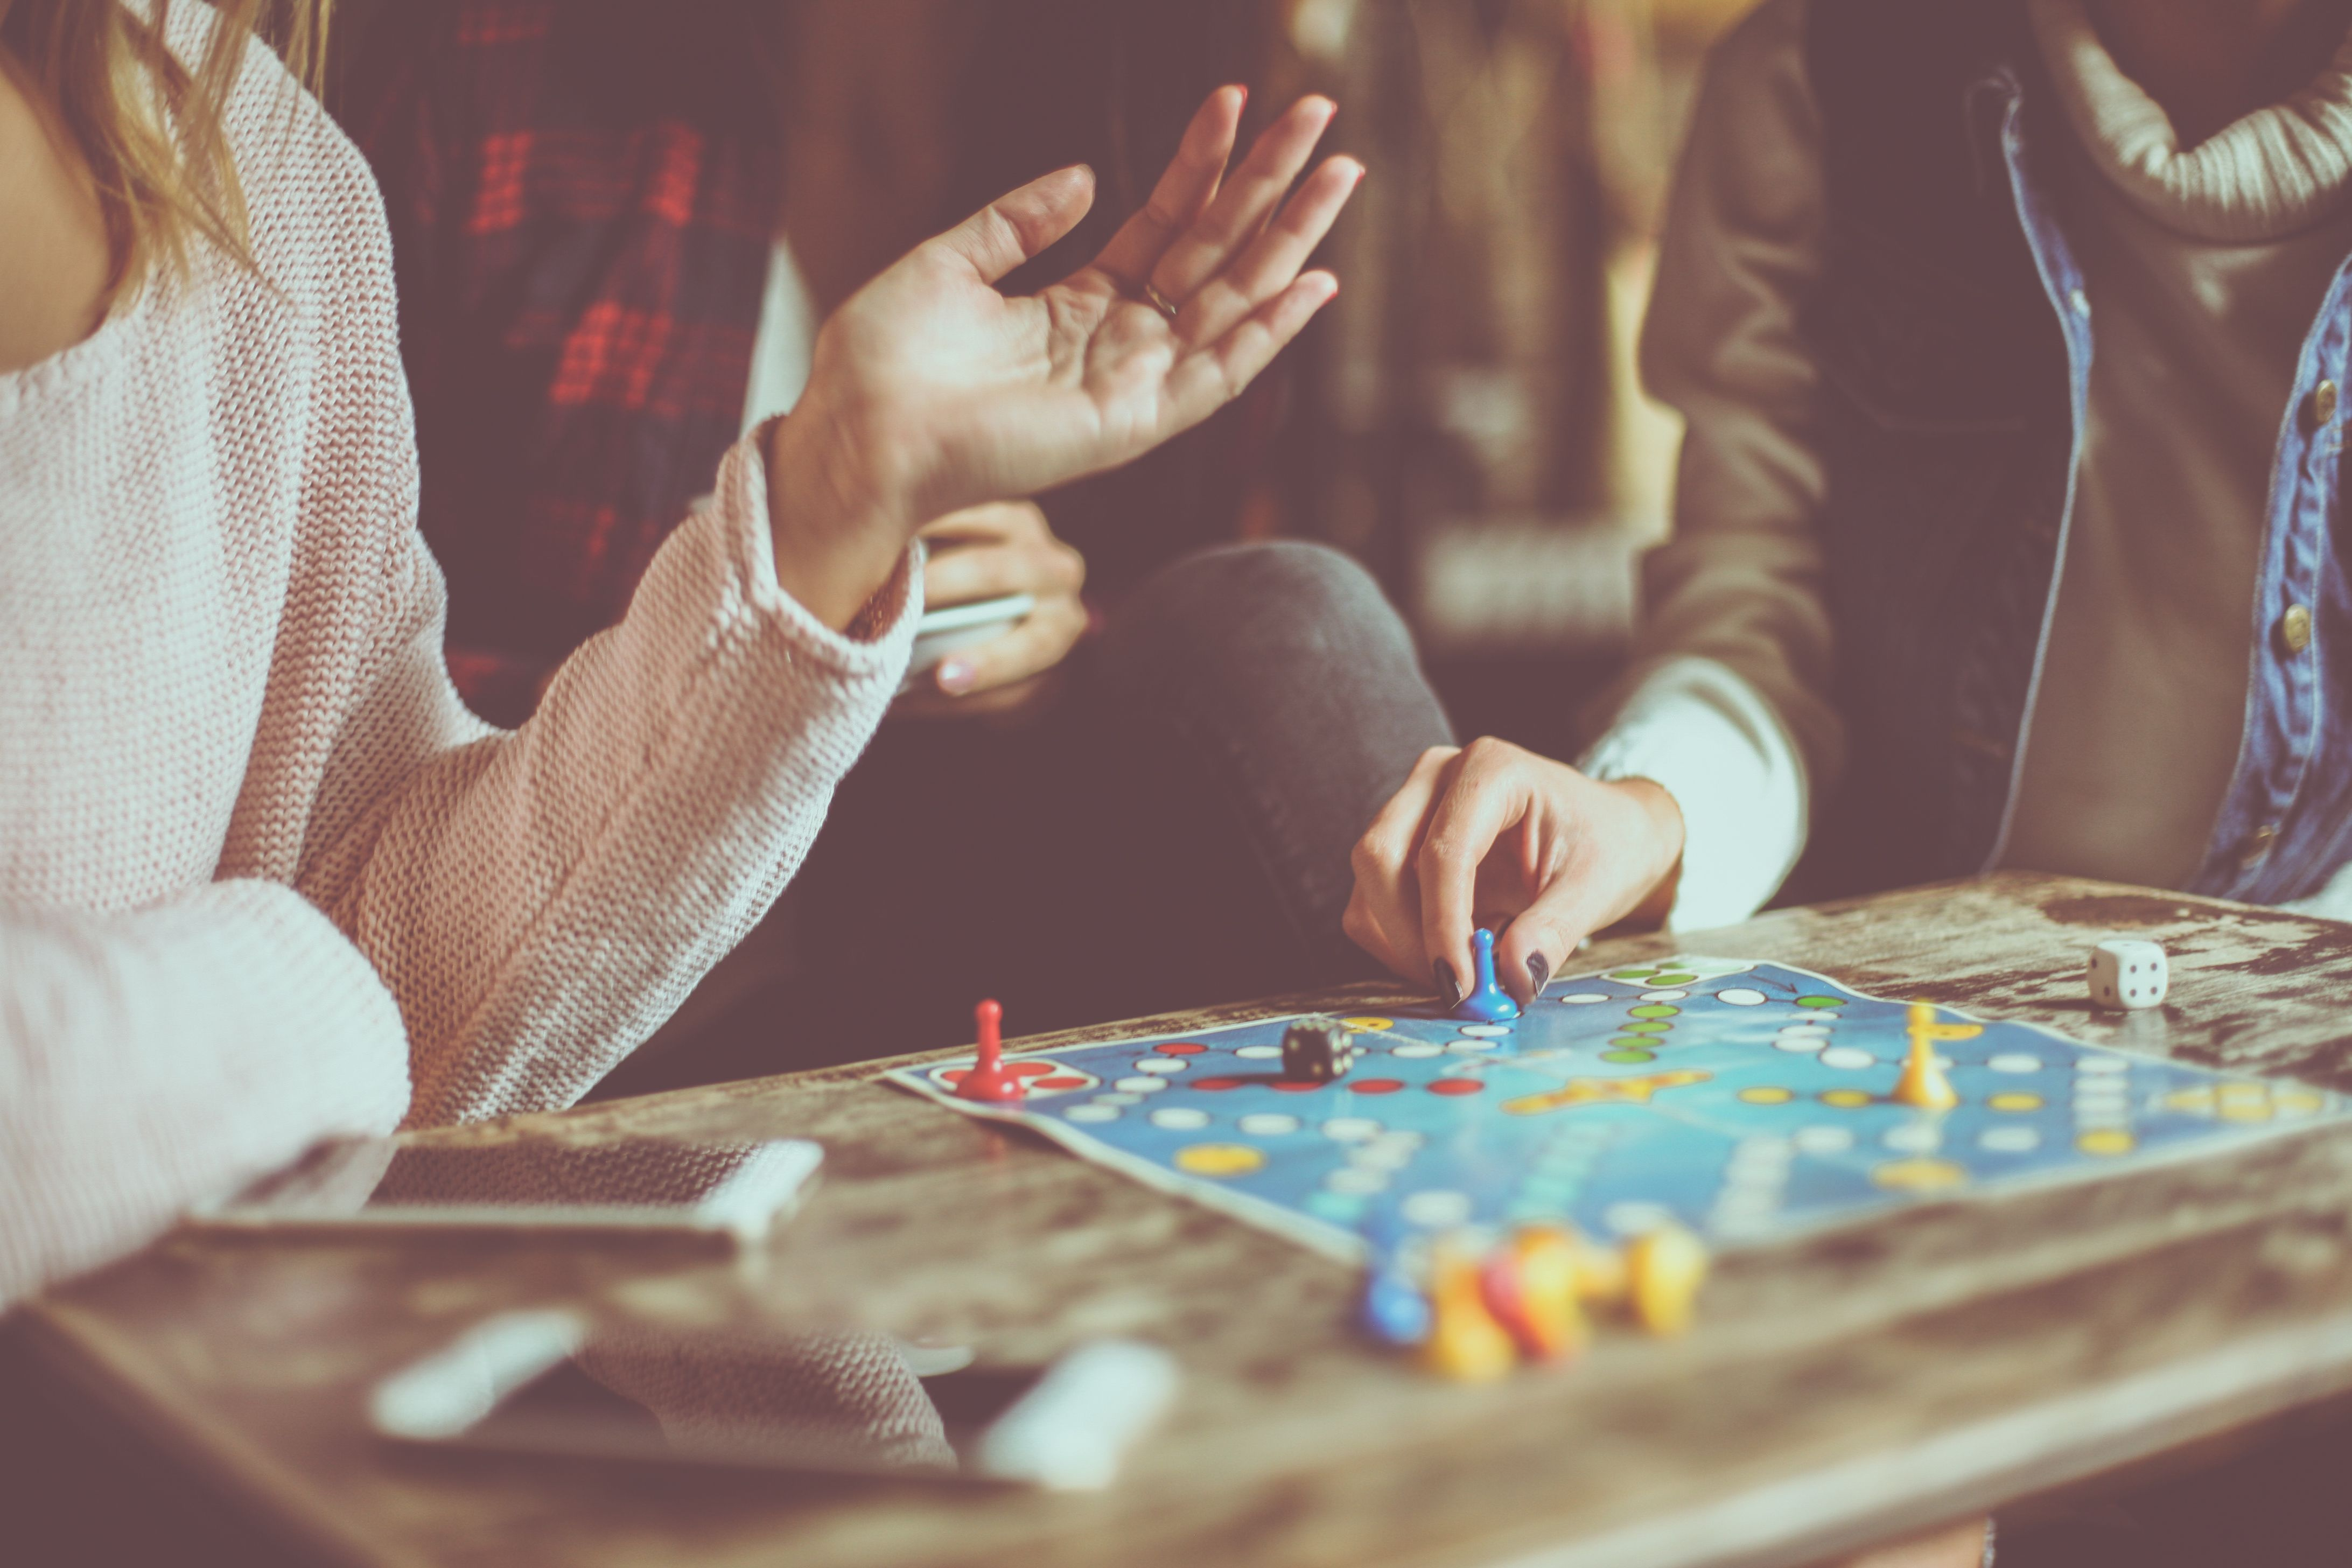 24 Best Games To Play With Friends At Home Game Night Ideas